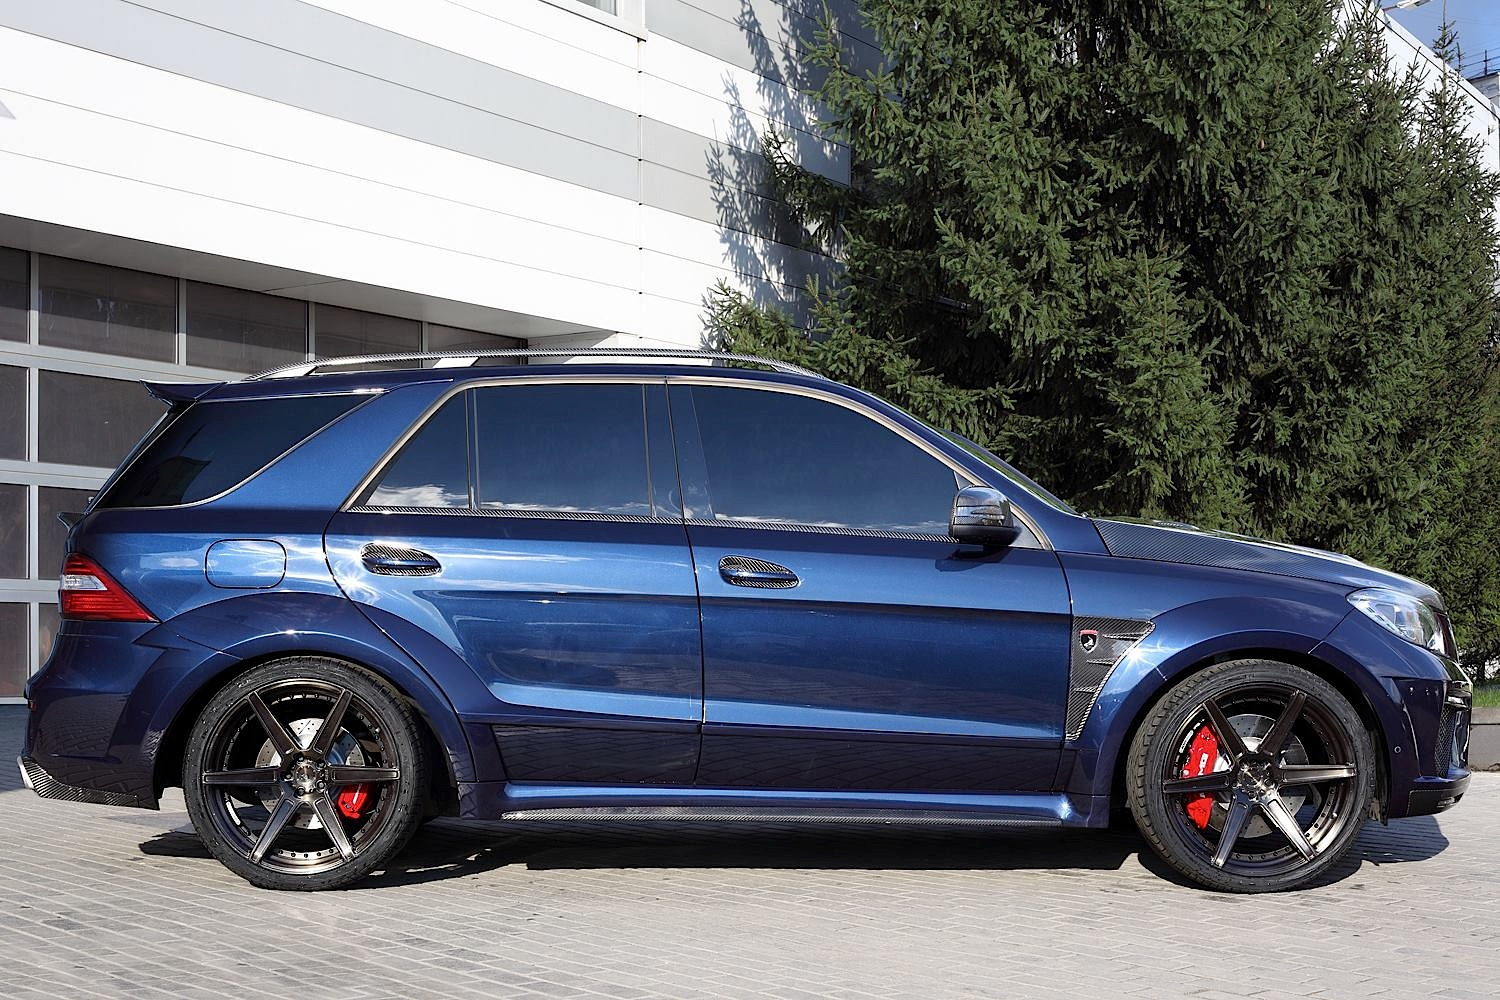 Topcar S Ml 63 Amg Inferno In Dark Blue Looks Eerie